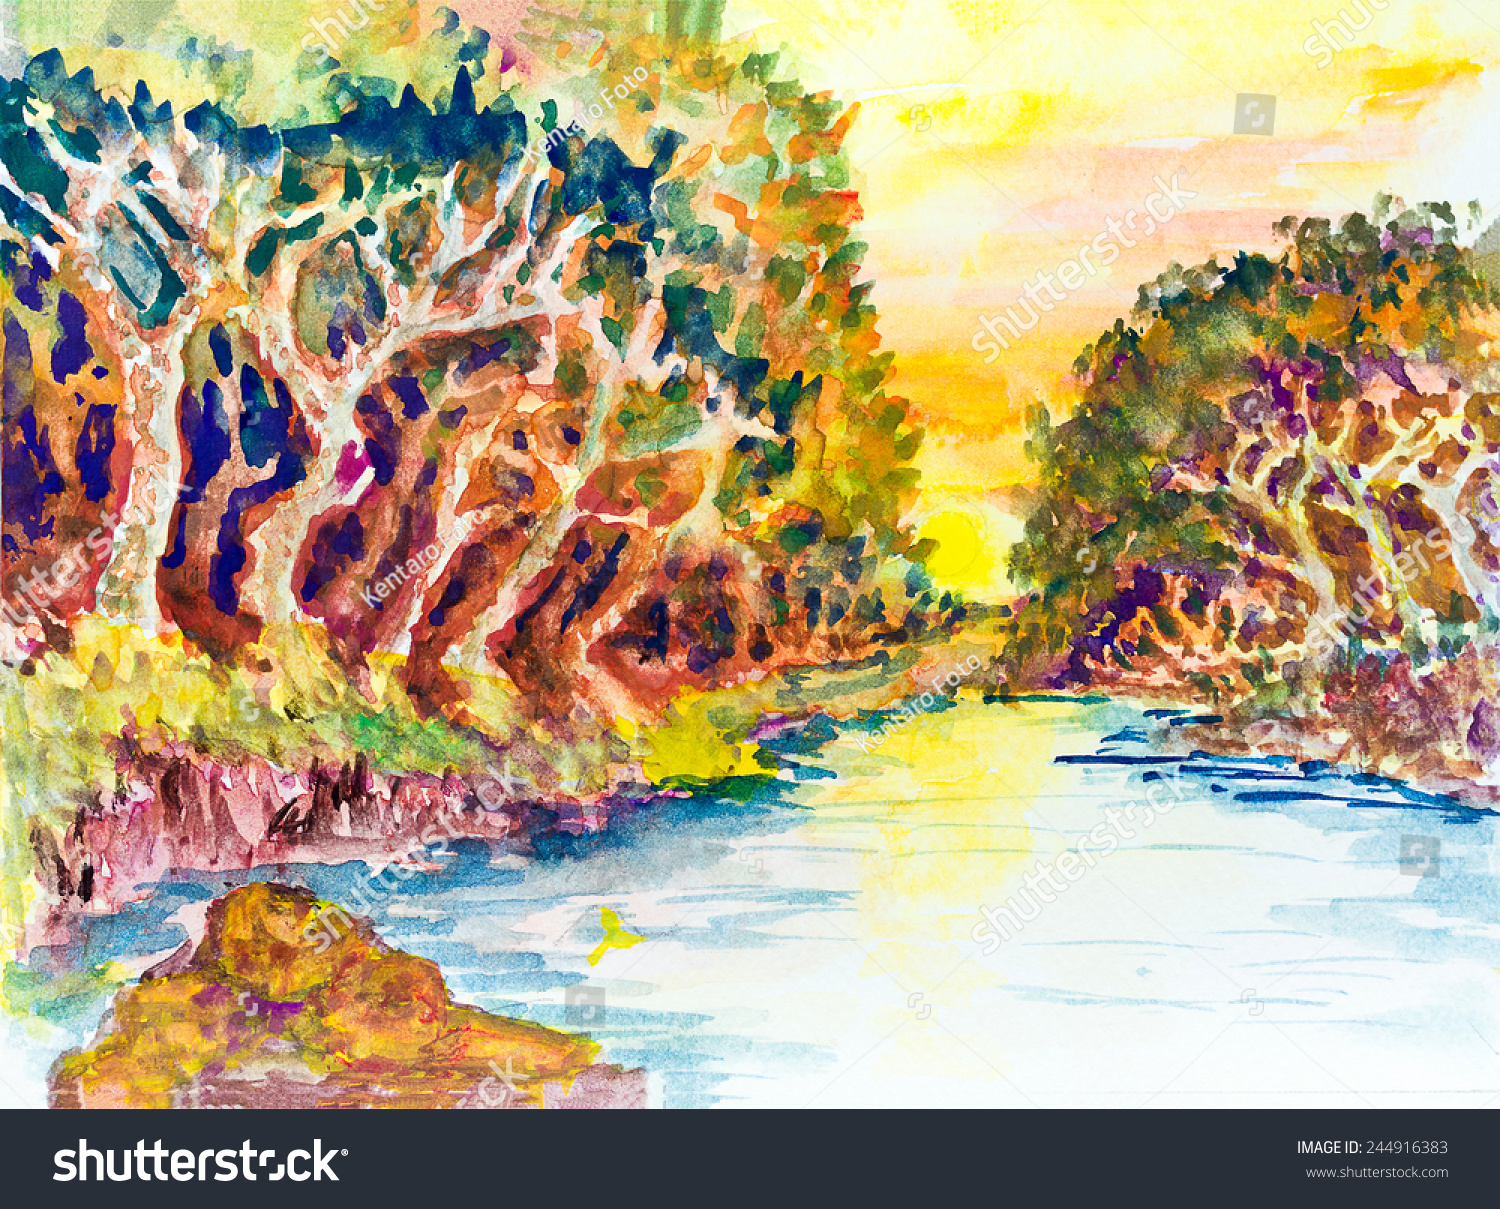 Watercolor Painting Landscape Sunset On The River And Forest